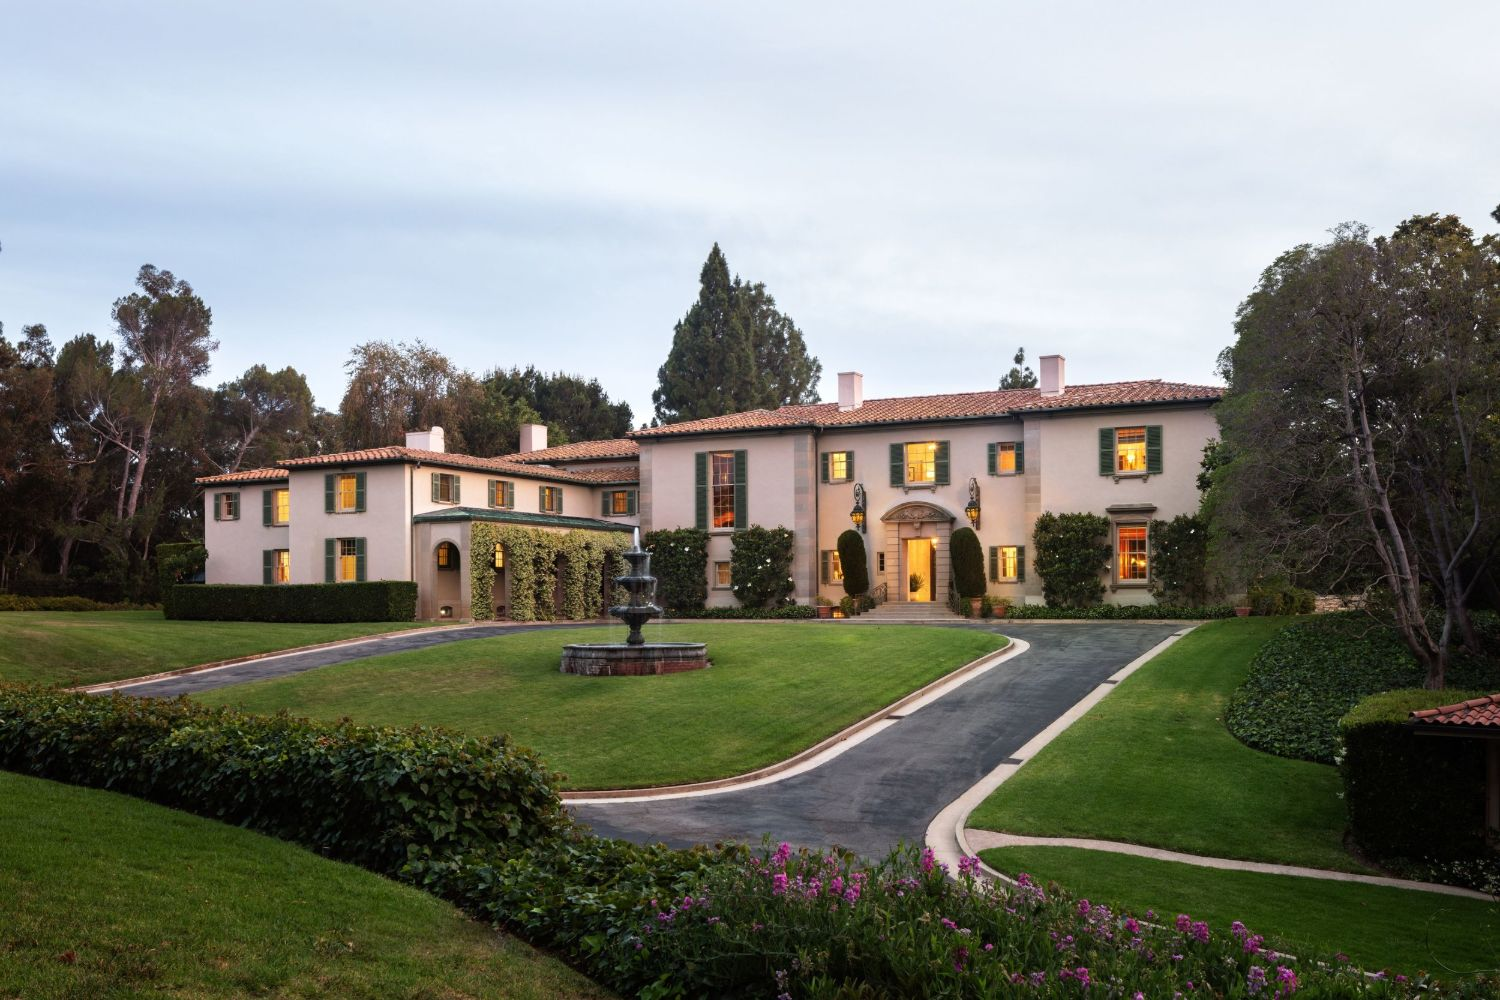 Iconic Hollywood home in Holmby Hills sold. Classic Tuscan-style home